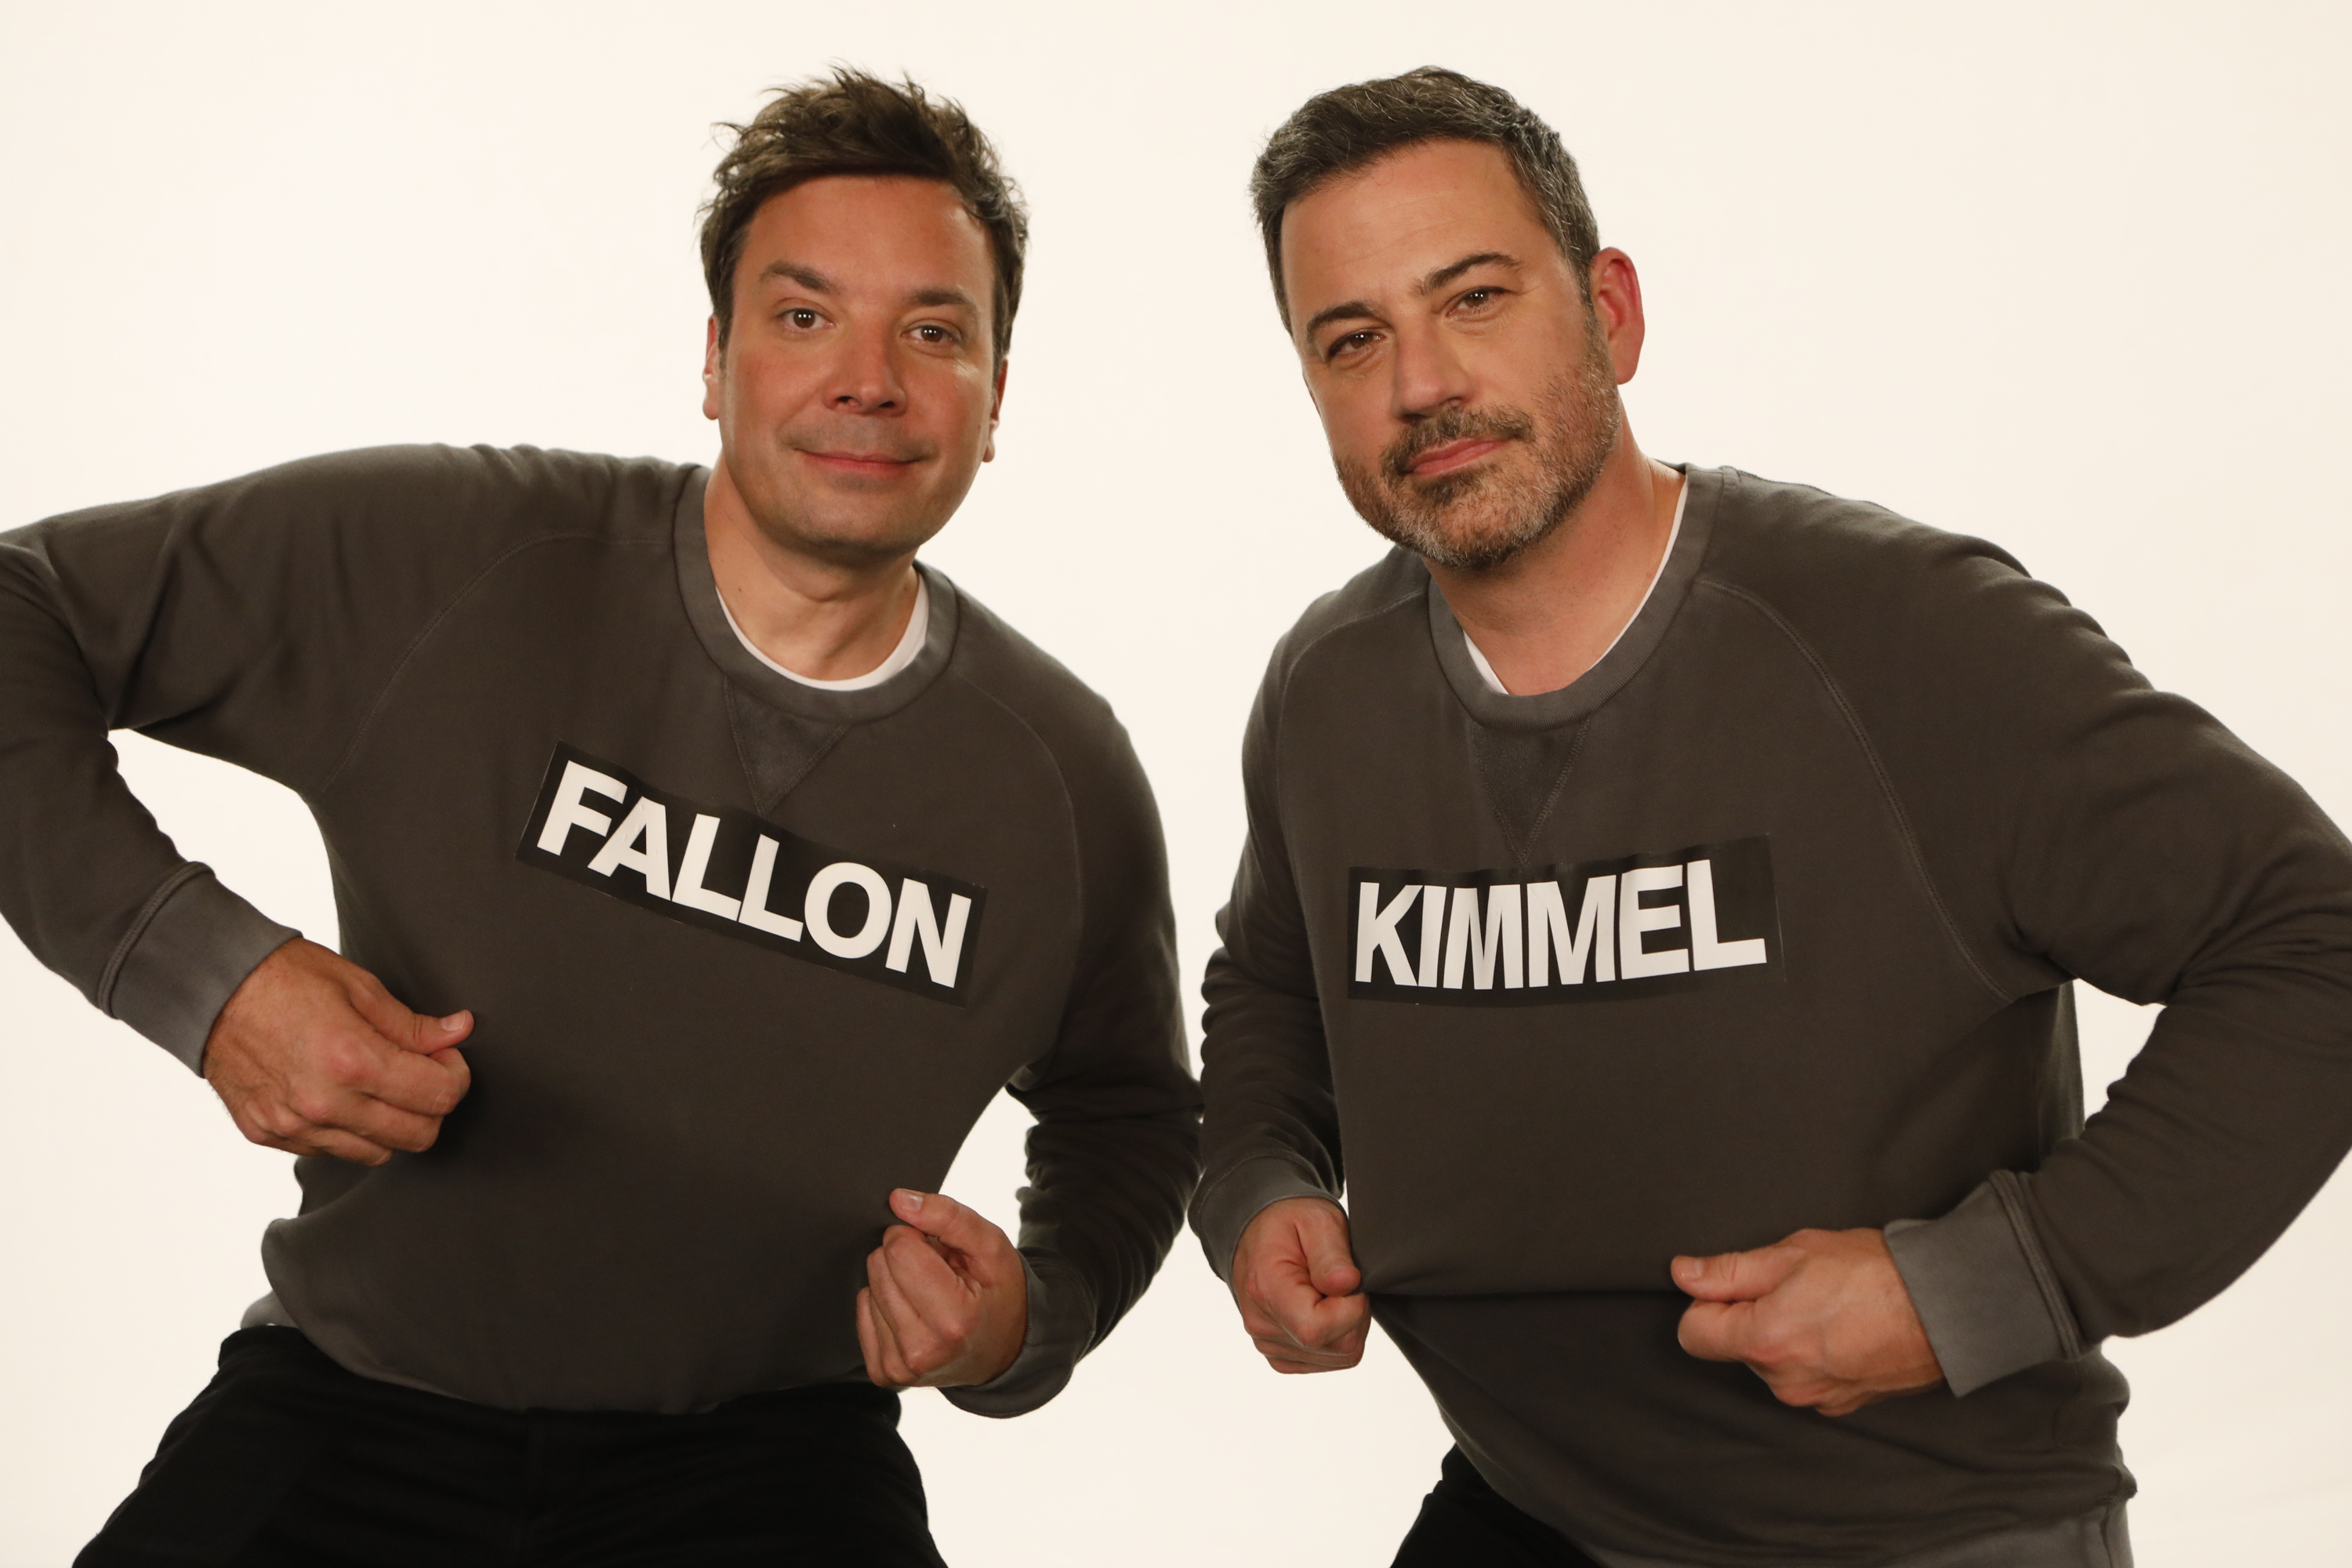 Jimmy Fallon, Jimmy Kimmel